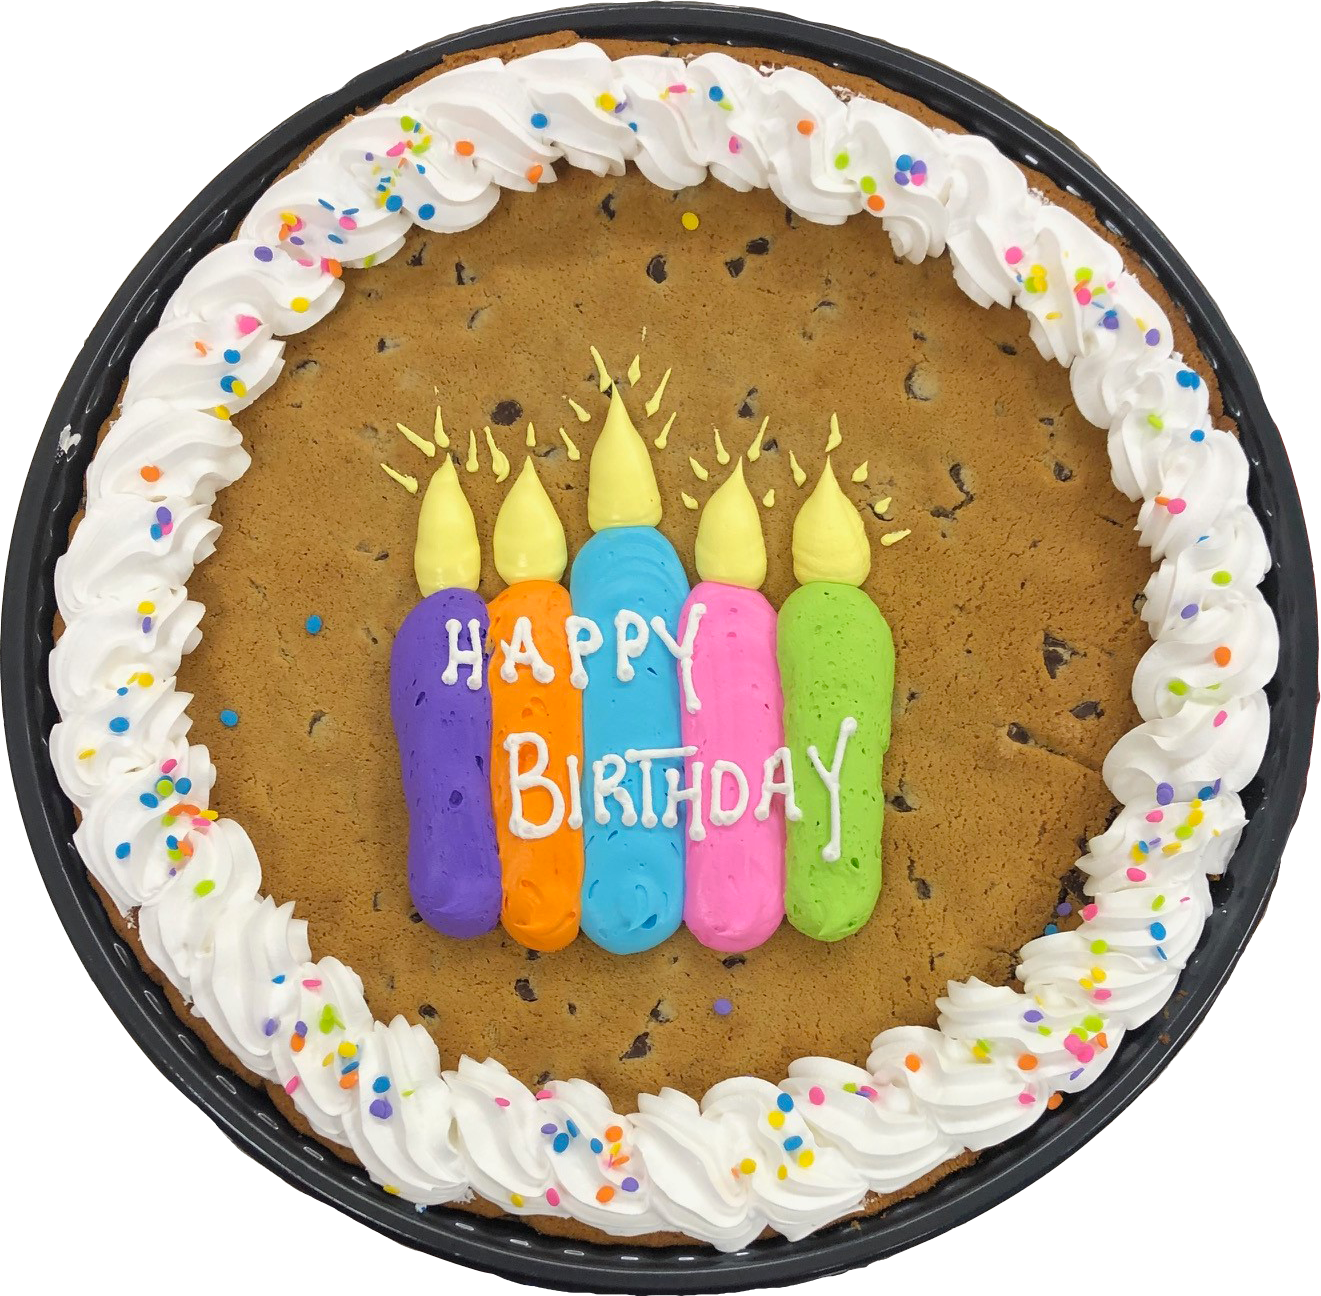 Awesome Jumbo 12 Chocolate Chip Cookie Cake Birthday Candles Berkots Personalised Birthday Cards Veneteletsinfo